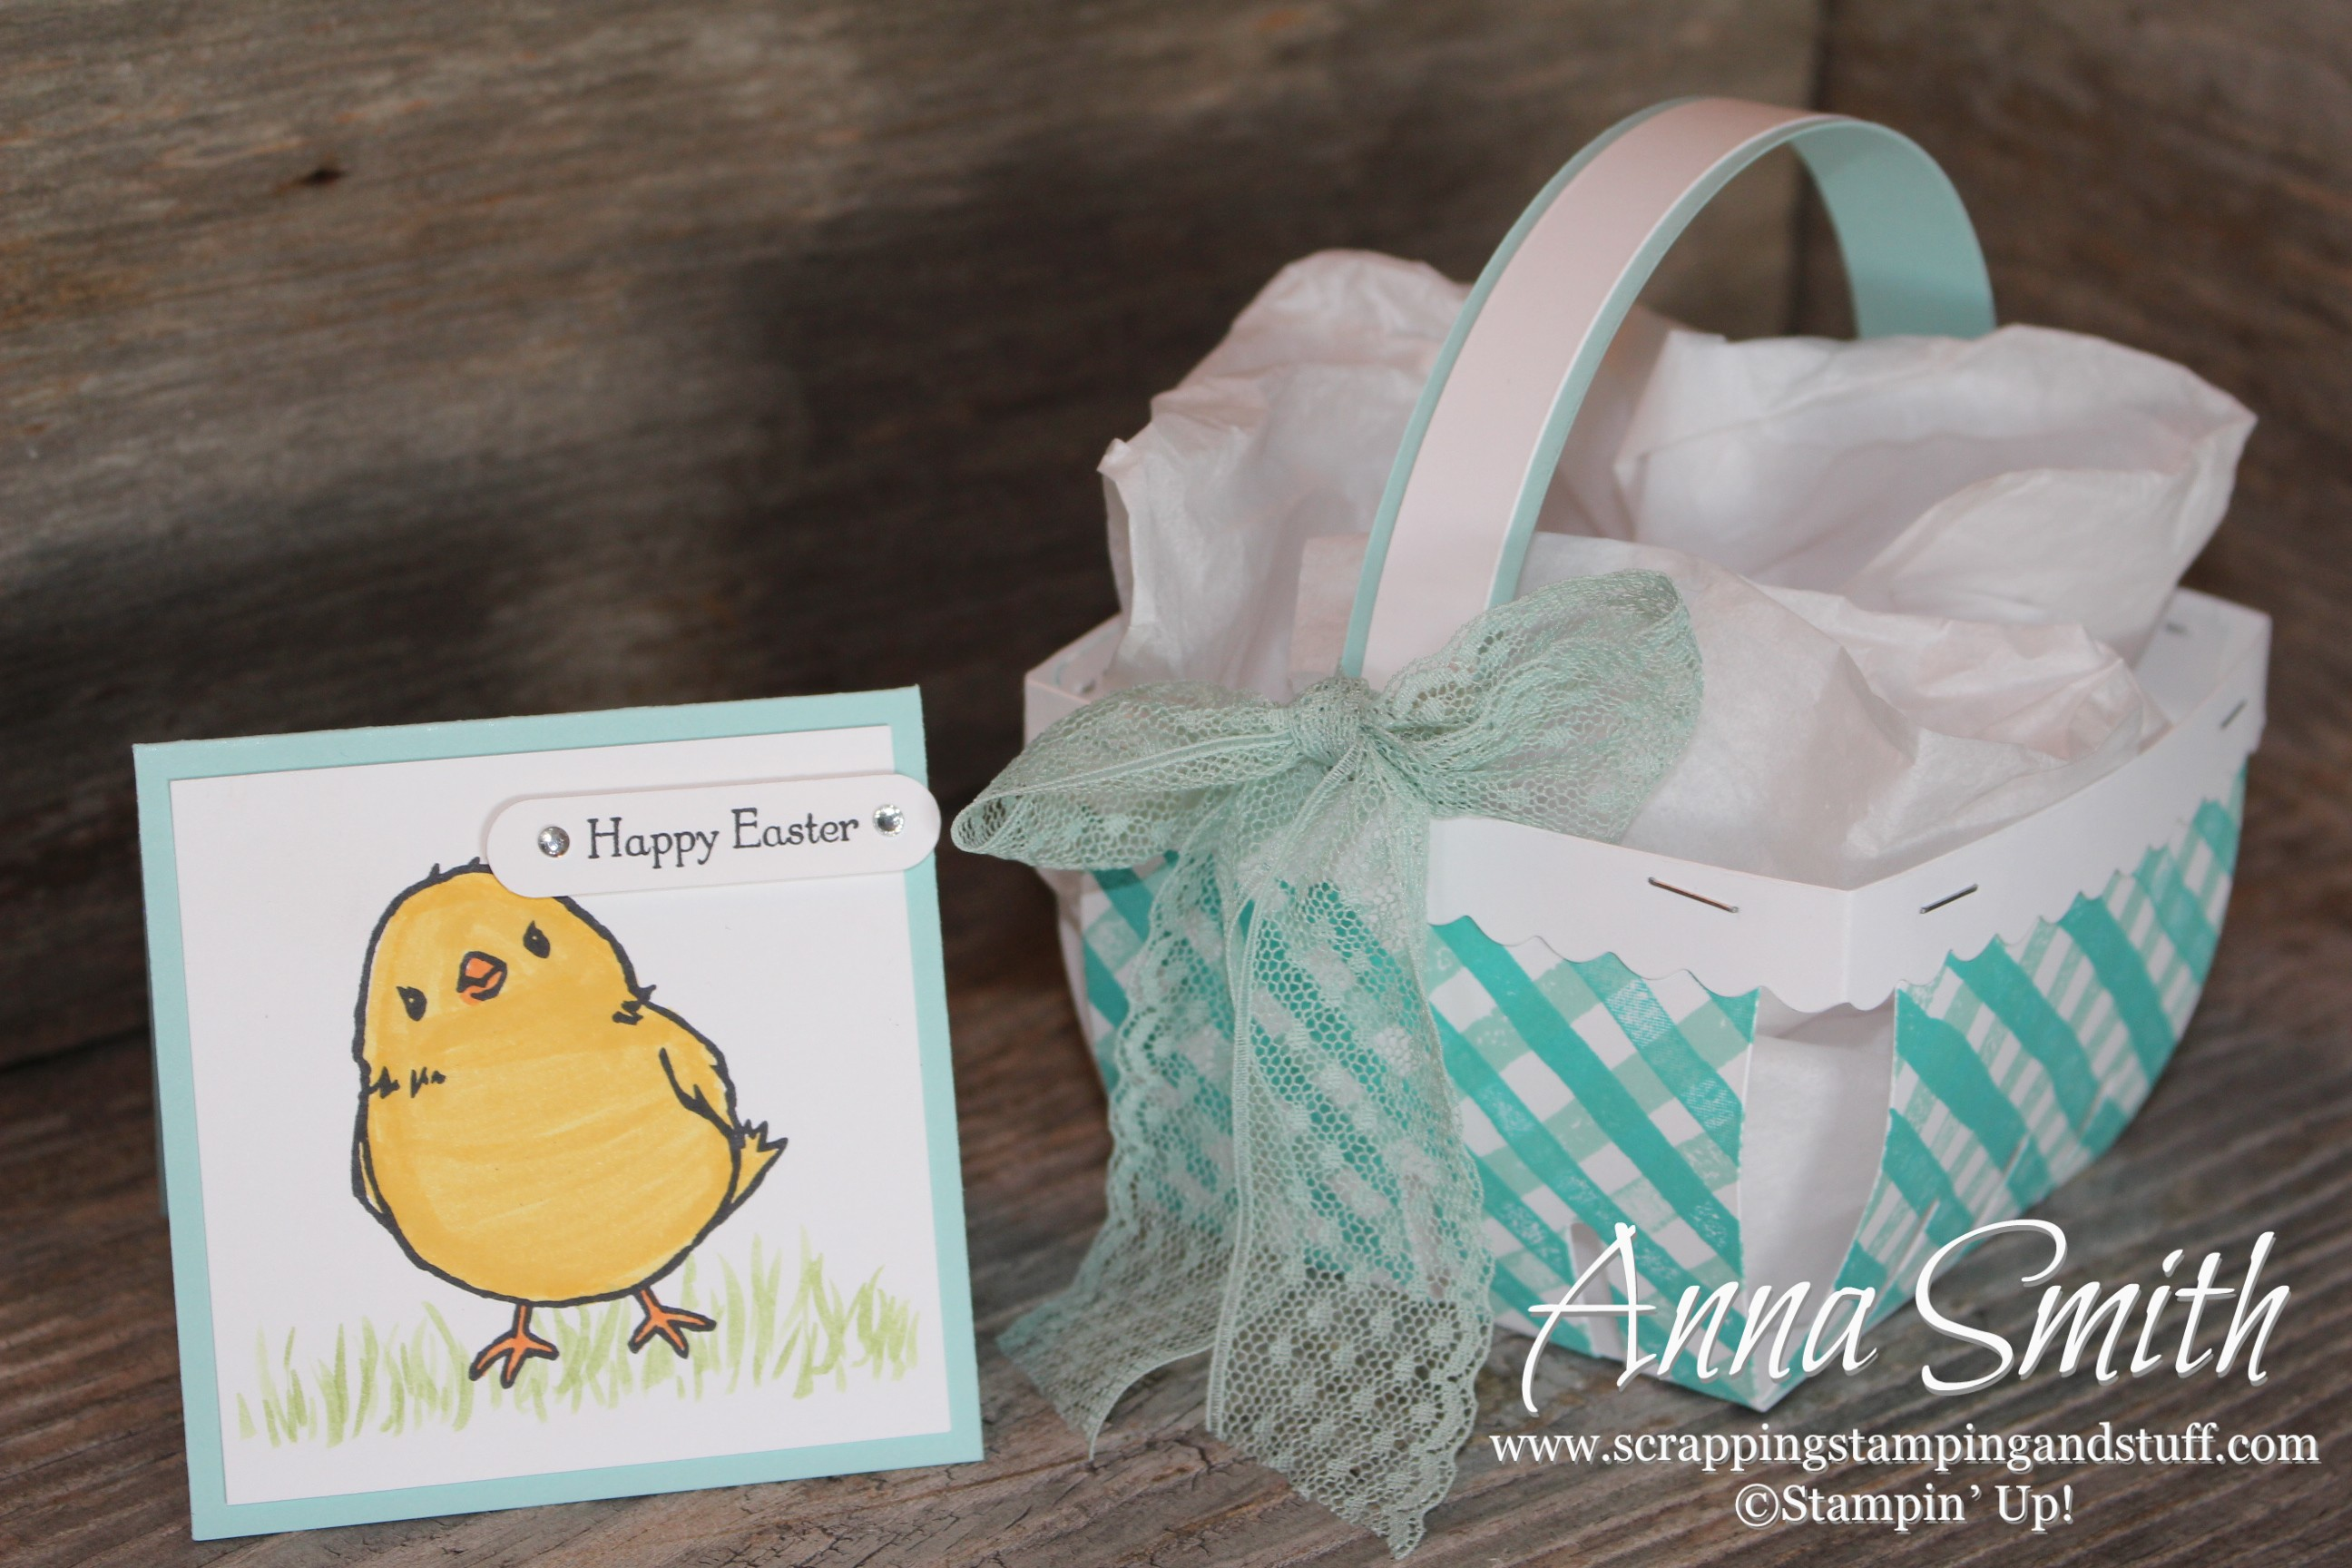 Osat blog hop spring has sprung easter card and basket scrapping